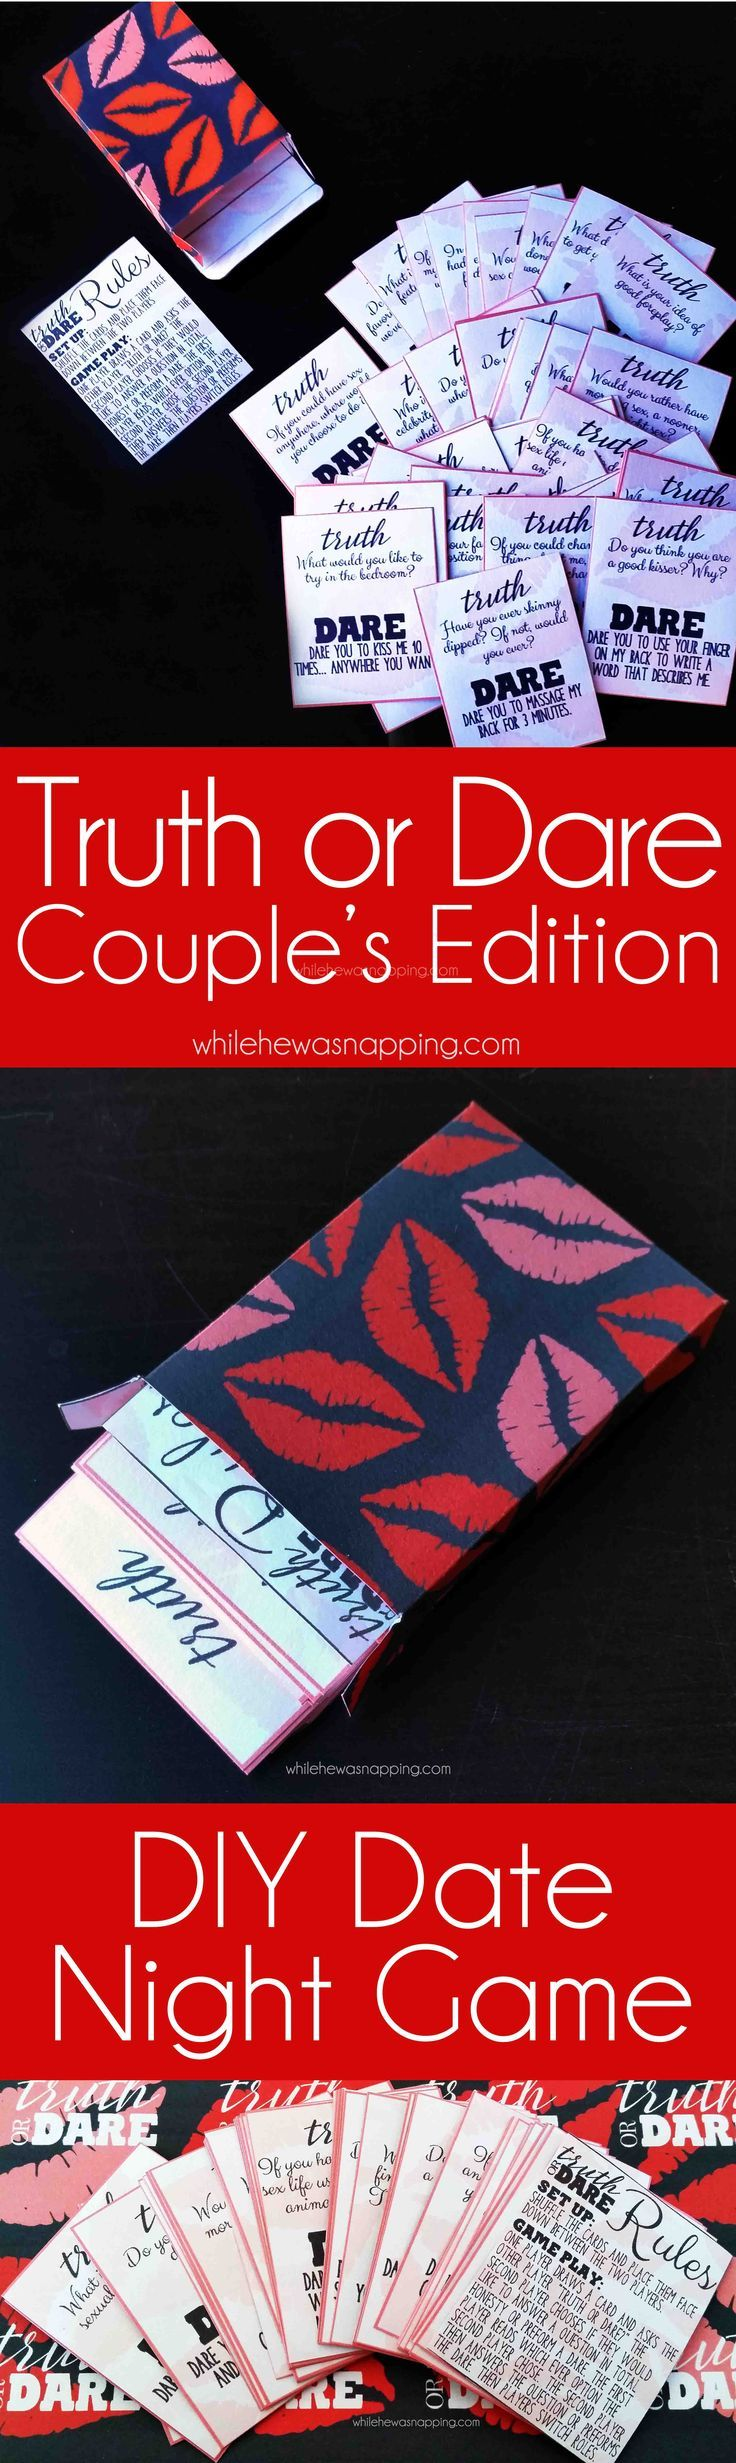 DIY Truth or Dare Couple's Edition Printable game! Perfect for a spicy date night in and makes game play smooth and fun!